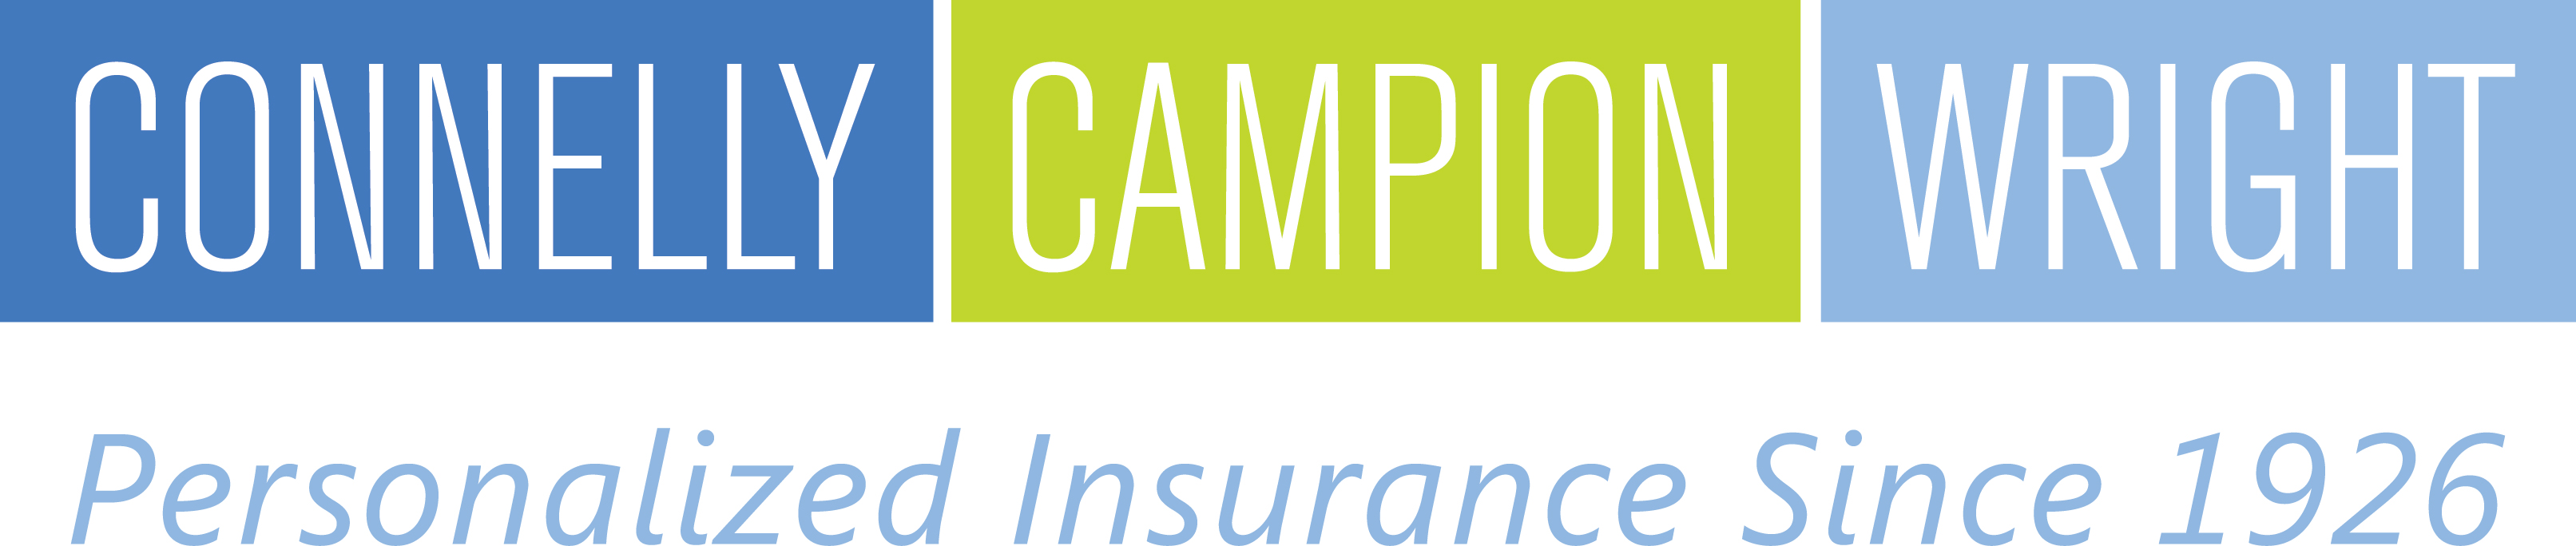 Connelly-Campion-Wright Insurance